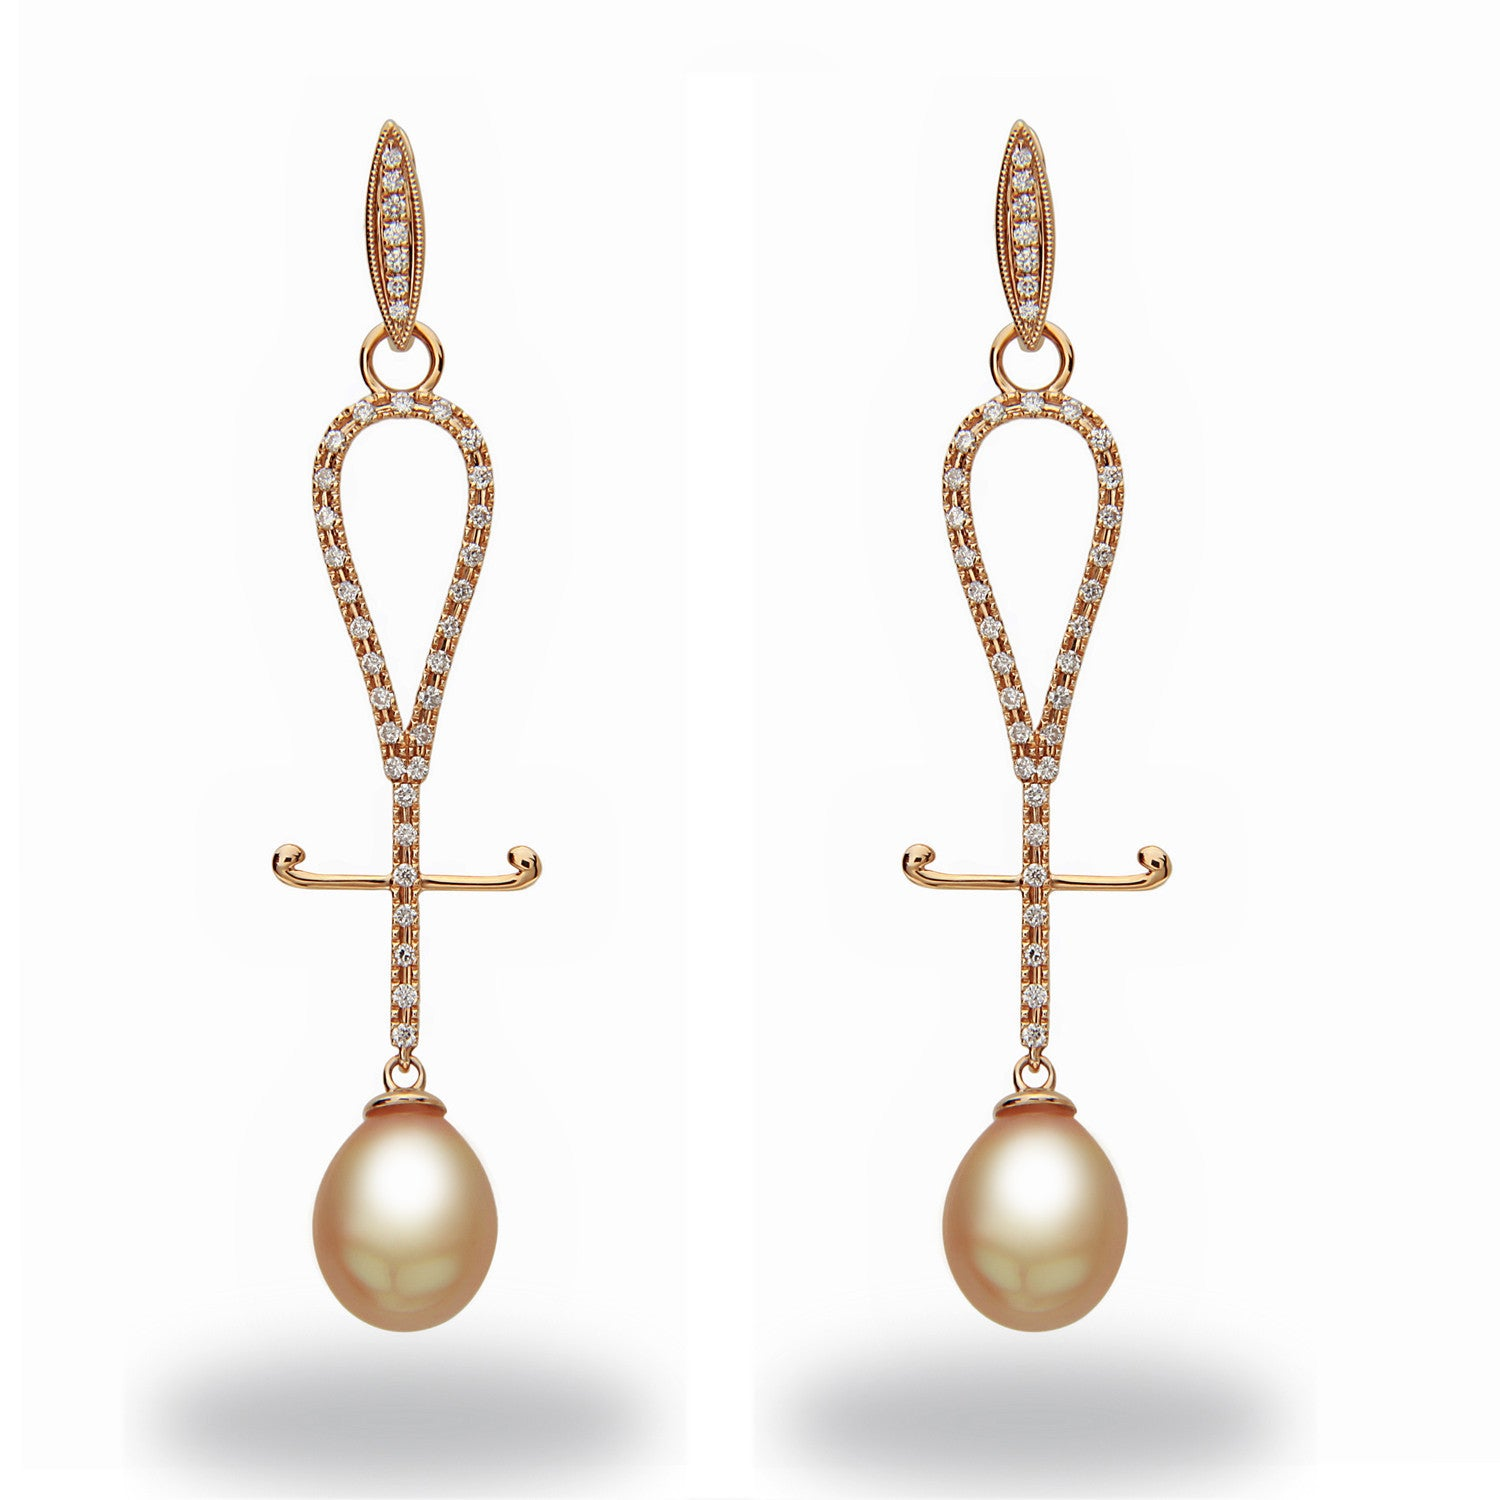 Chandelier 10-11mm Golden South Sea Pearl and Diamond Earrings